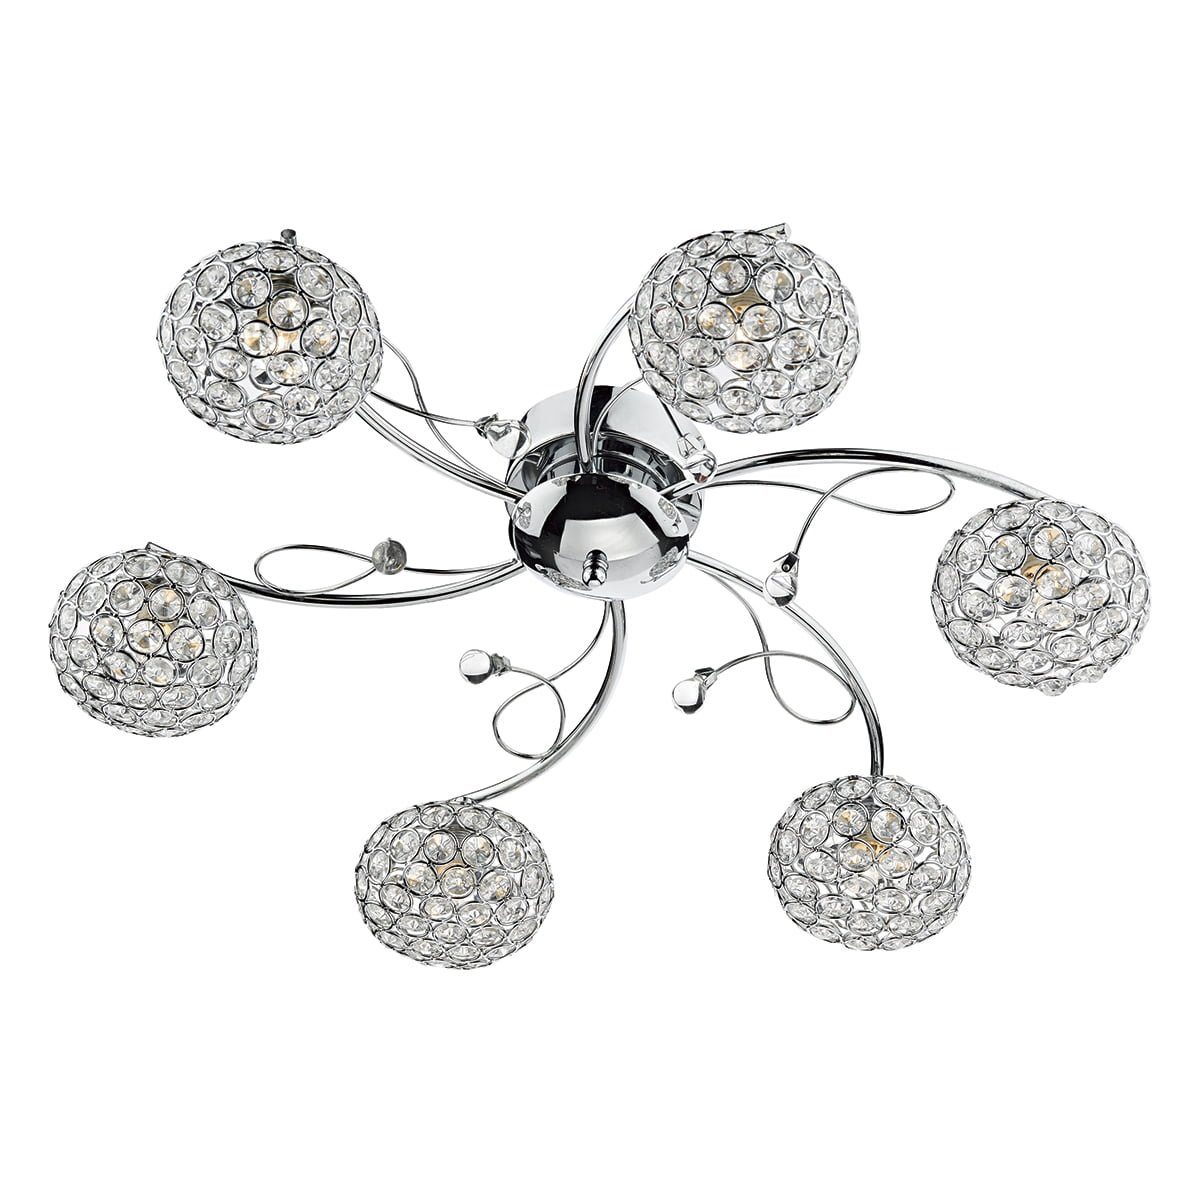 Impex EDE6450 Eden 6 Light Semi Flush Fitting in Chrome